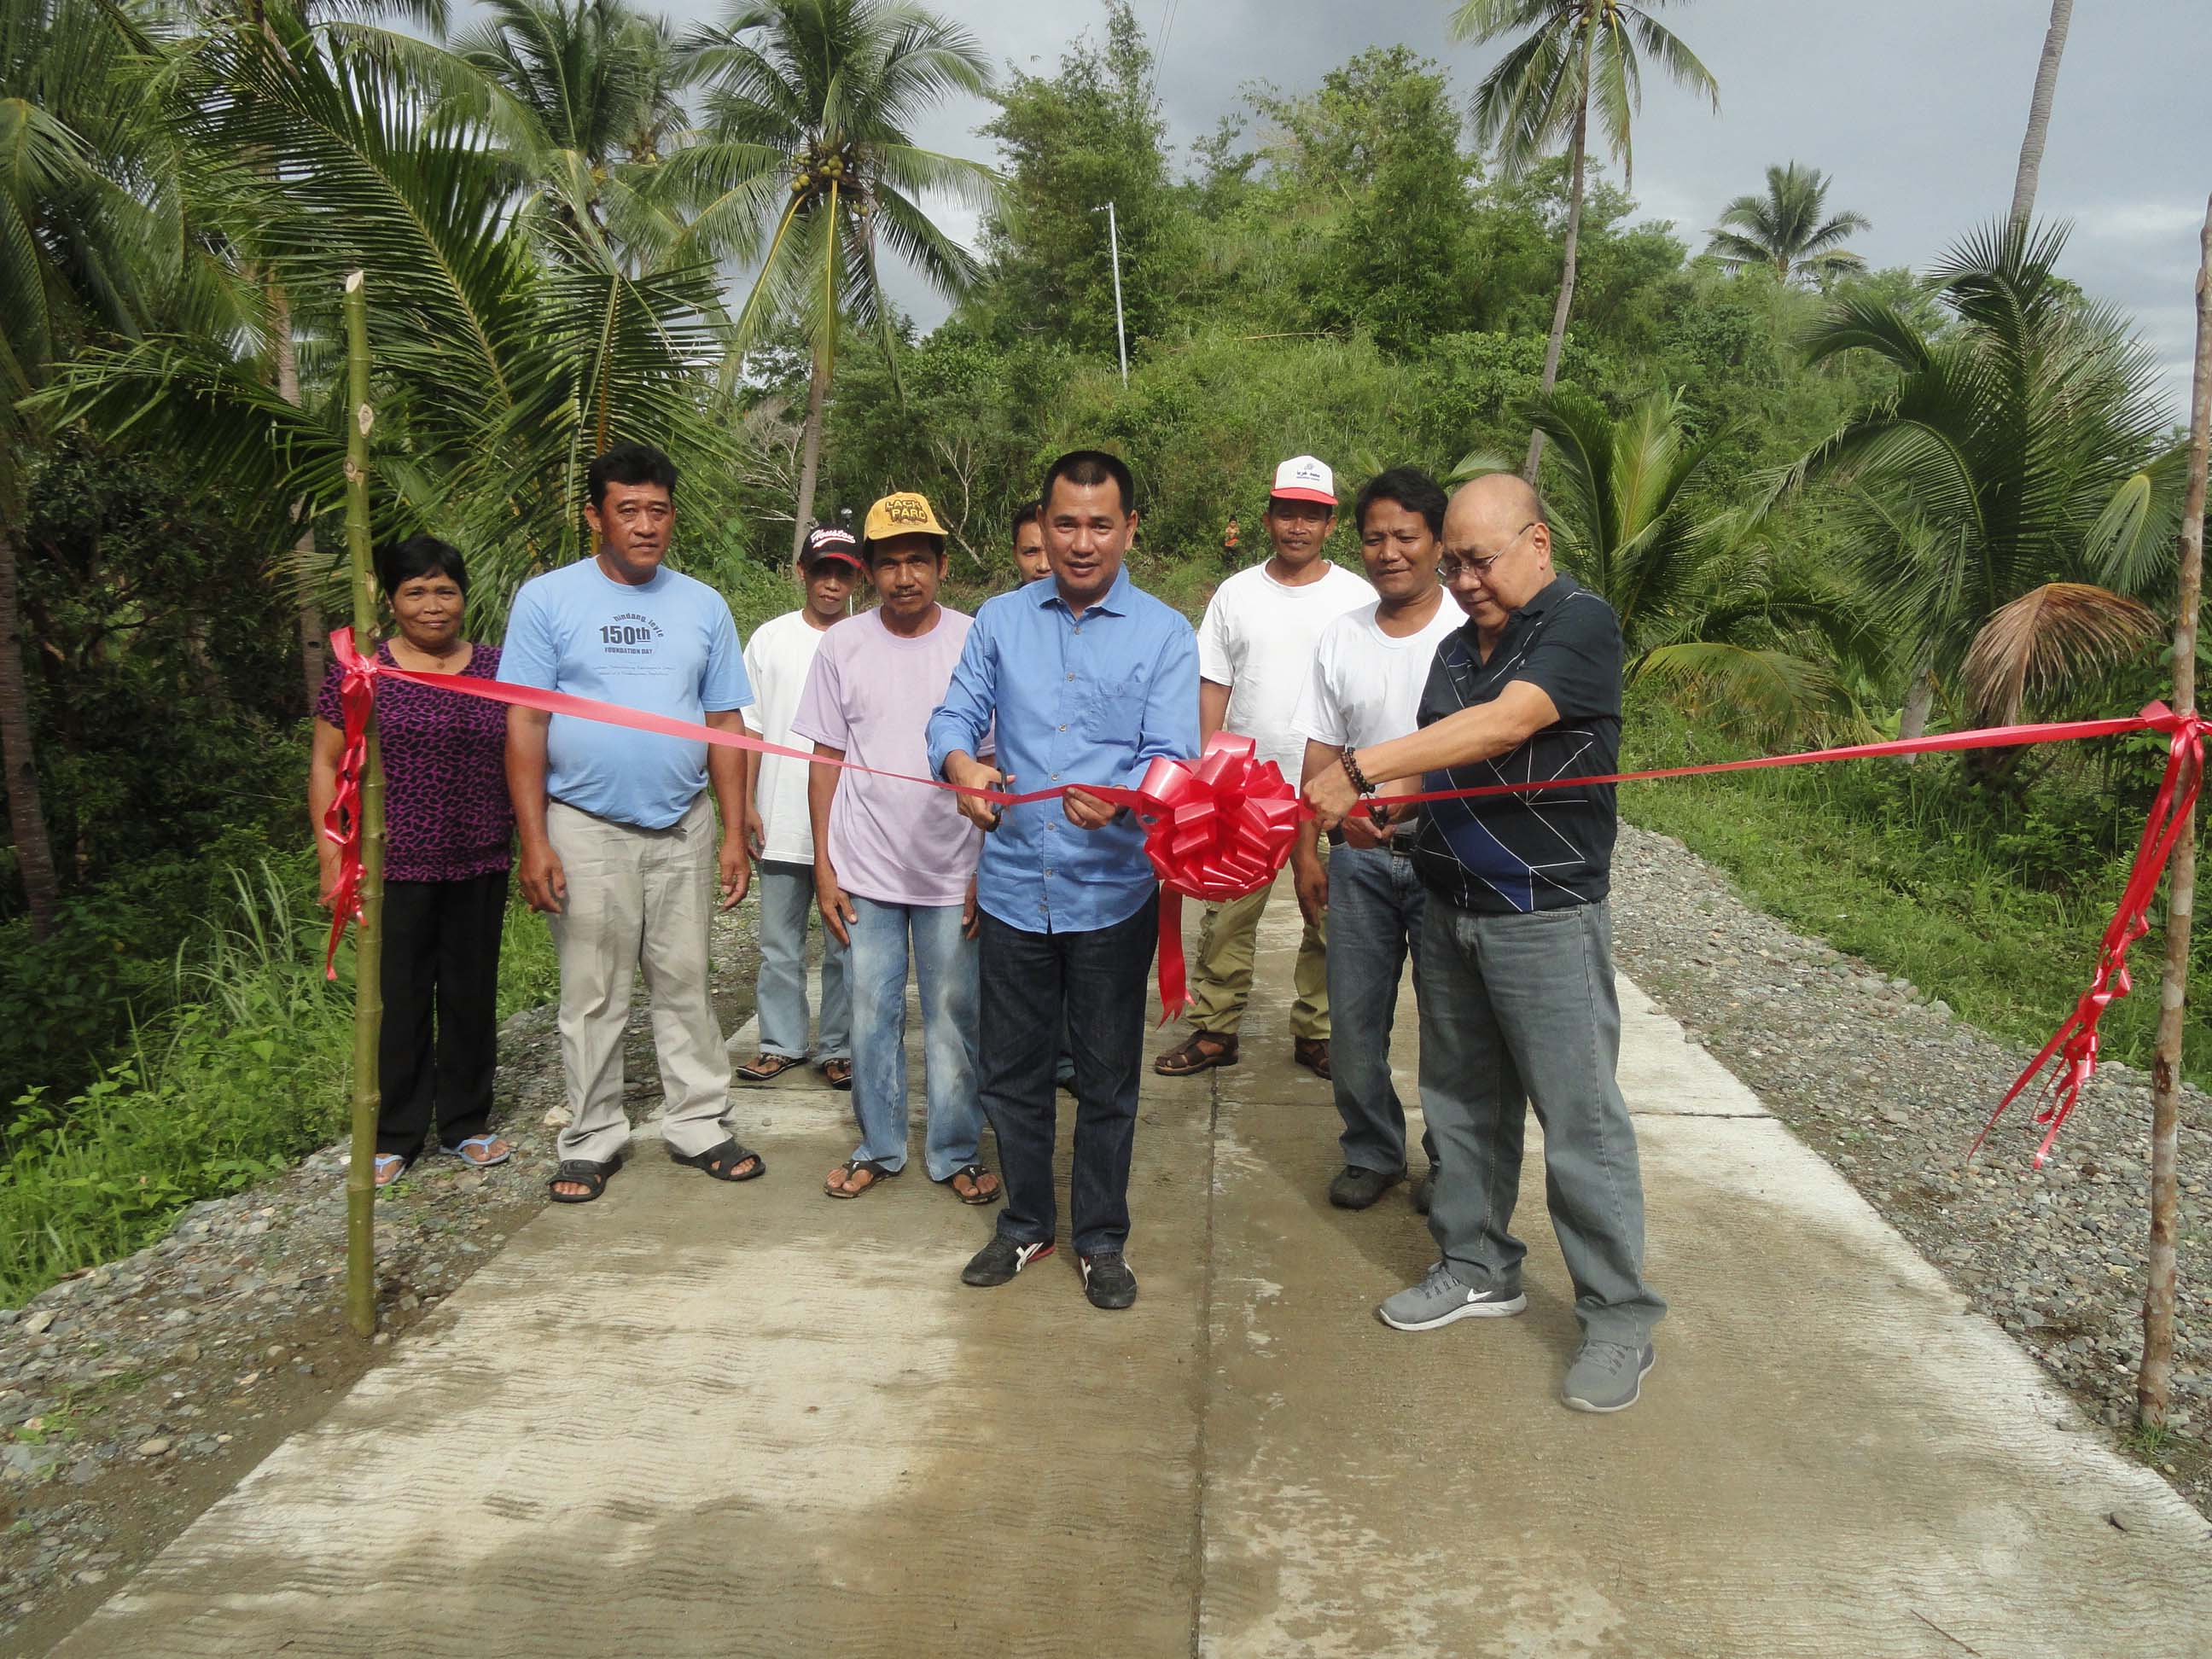 Leyte Governor Leopoldo Dominico L.Petilla lead the cutting of ribbon during the turn over and inaguaration of the 0.264 km road concreting under the Kalahi-CIDSS project in  Brgy Baldosa, Hindang,Leyte. He was joined by Mayor Elpedio Cabal and barangay chairman Elenito Abne and his council.(GINA .GEREZ)